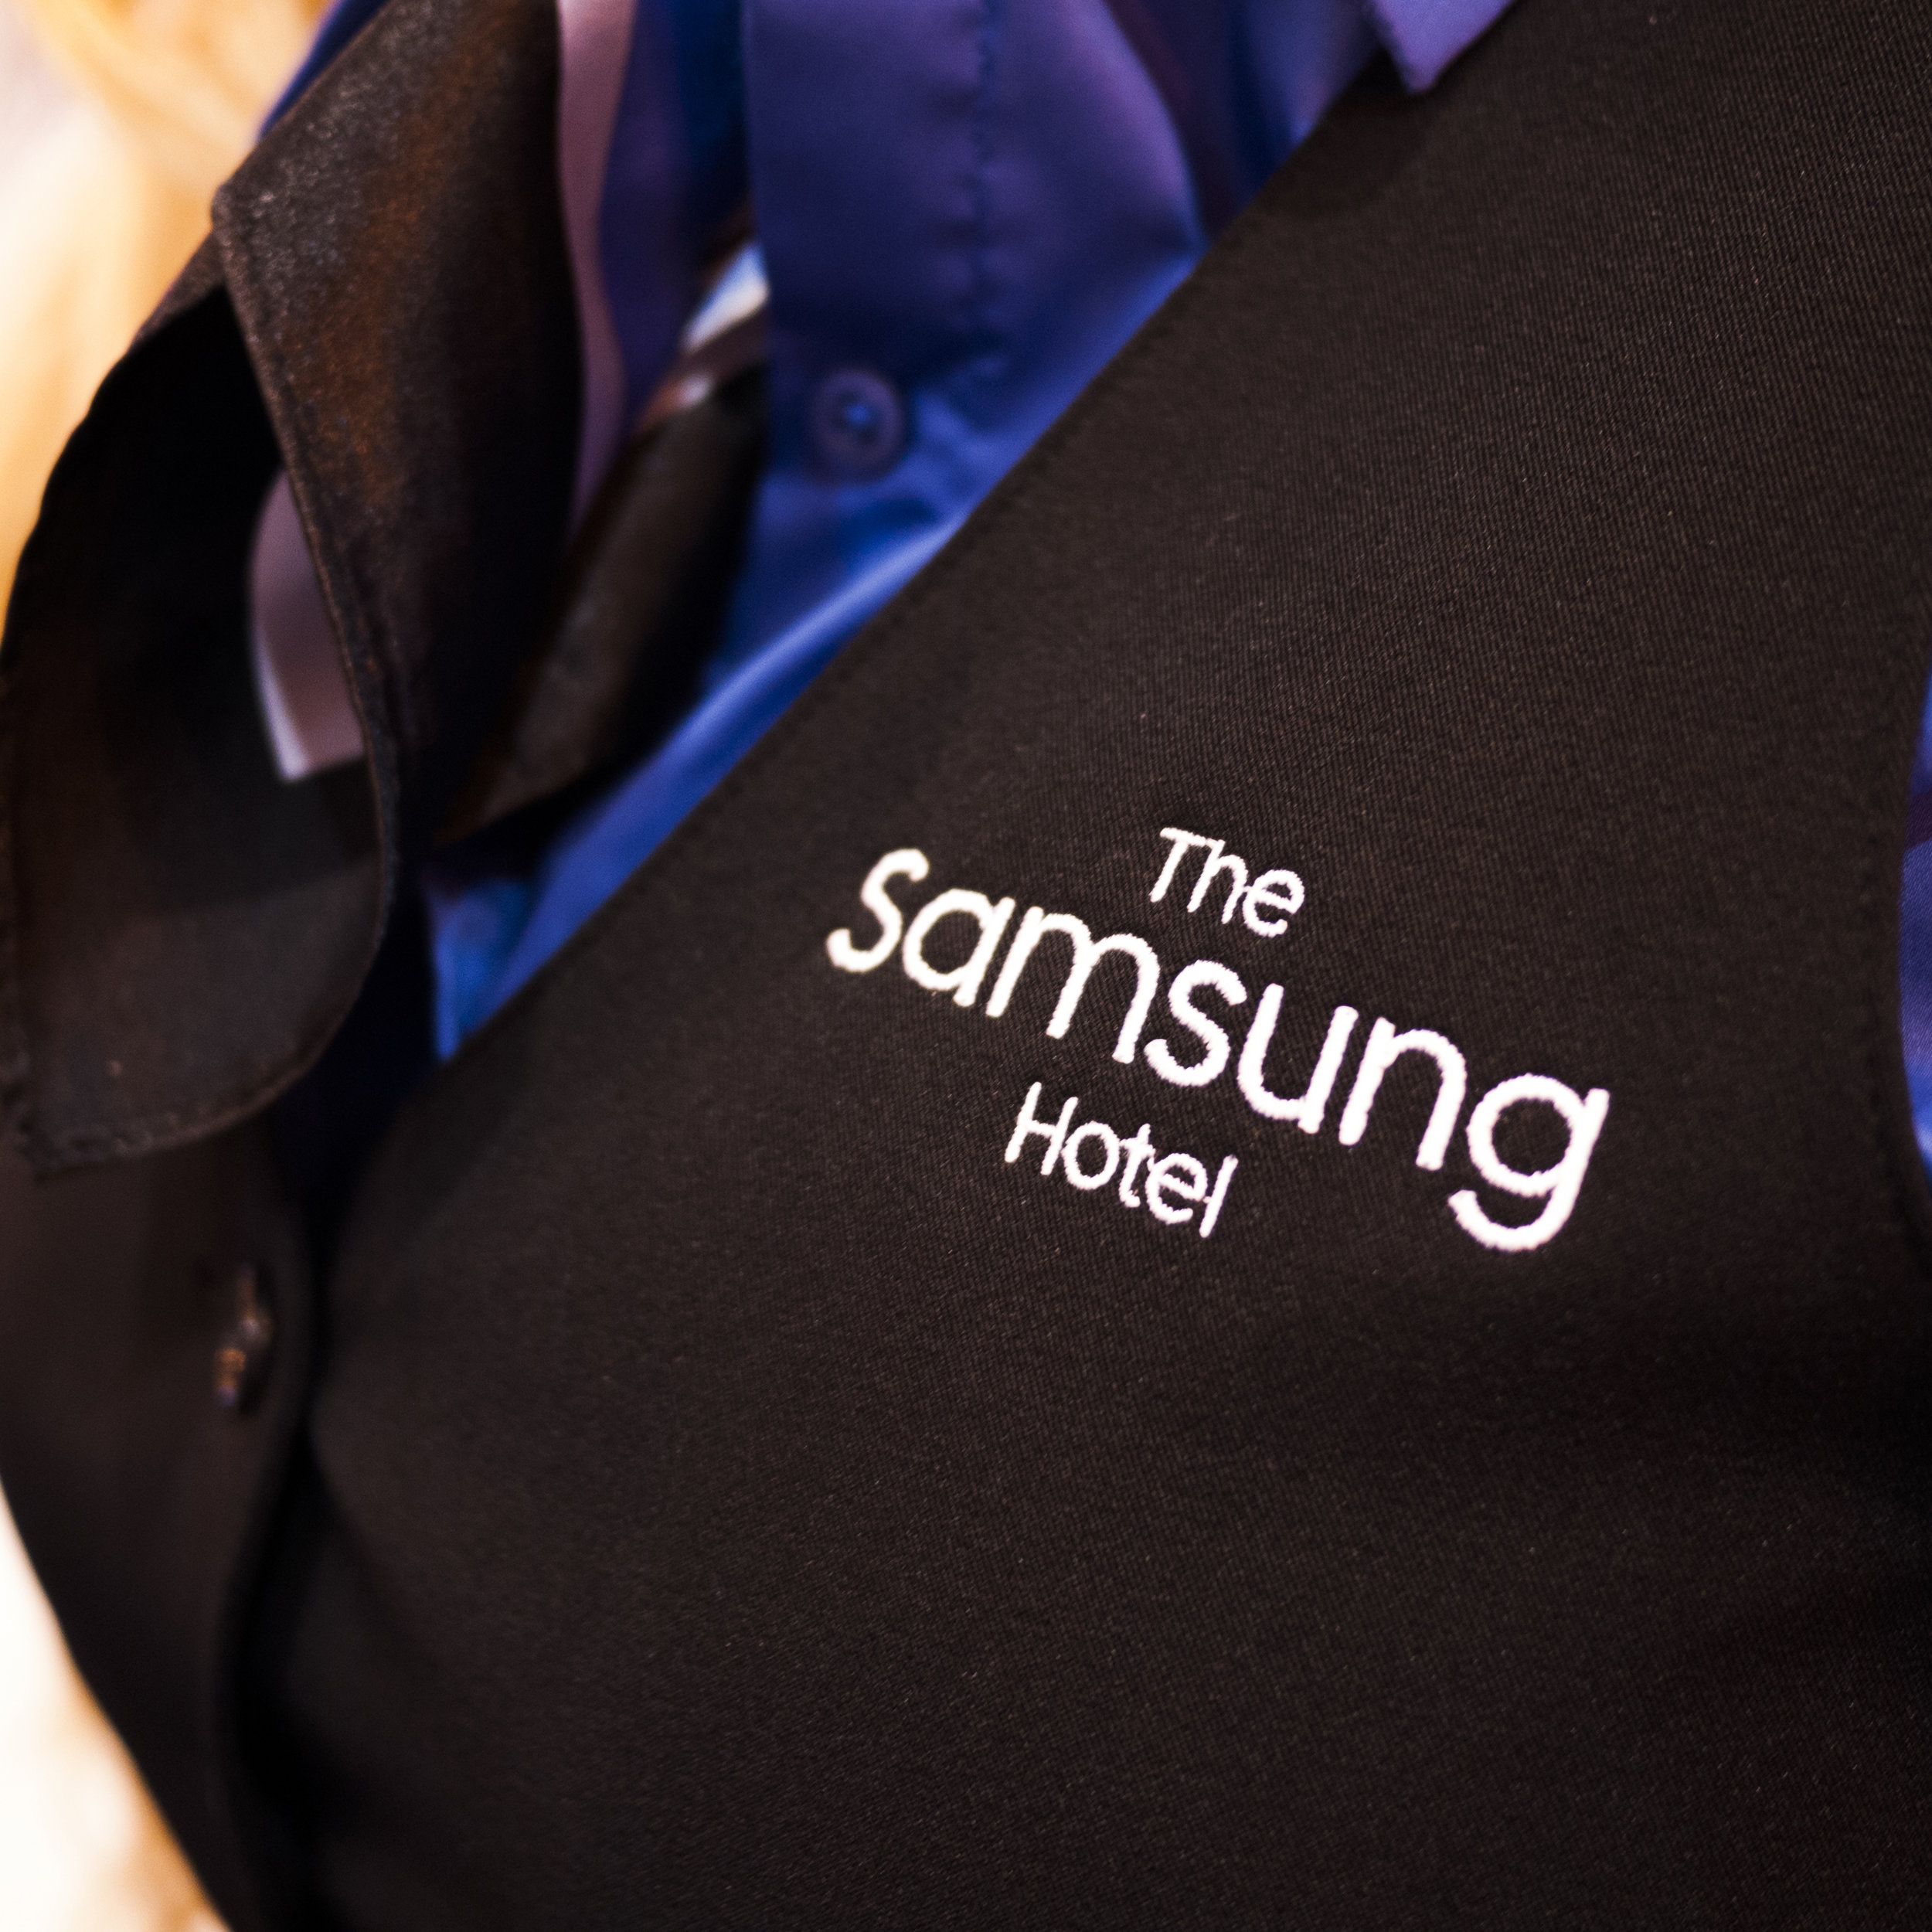 Samsung Hitec | Exhibit Design   Samsung decided to create a branded hotel environment in Hitec hospitality show. I was tasked with creating a new Samsung brand that would be built on for multiple years for this trade show.